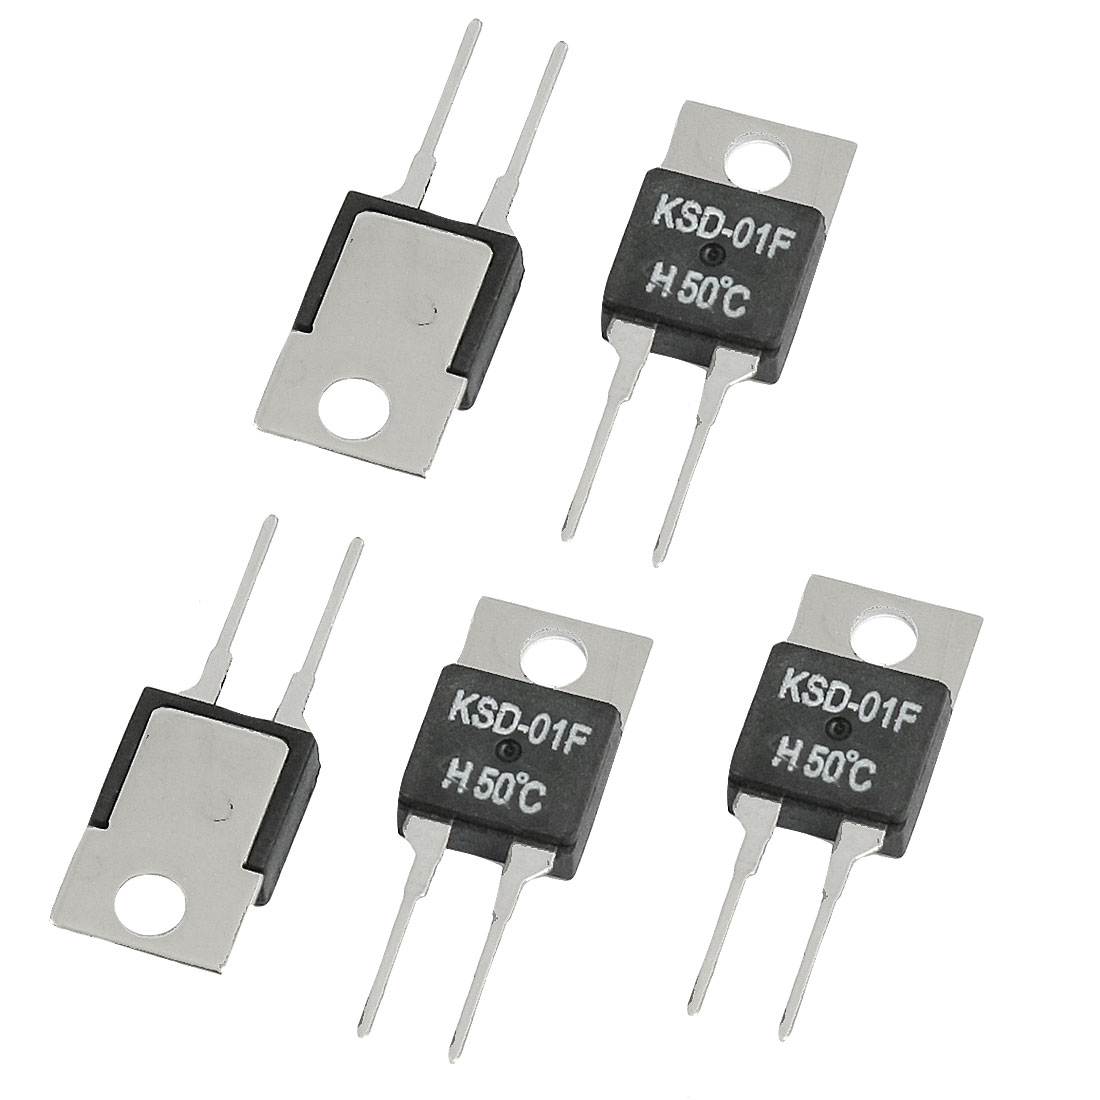 5 Pcs 50 Celsius NO Normal Open Temperature Switch Thermostat KSD-01F H50C